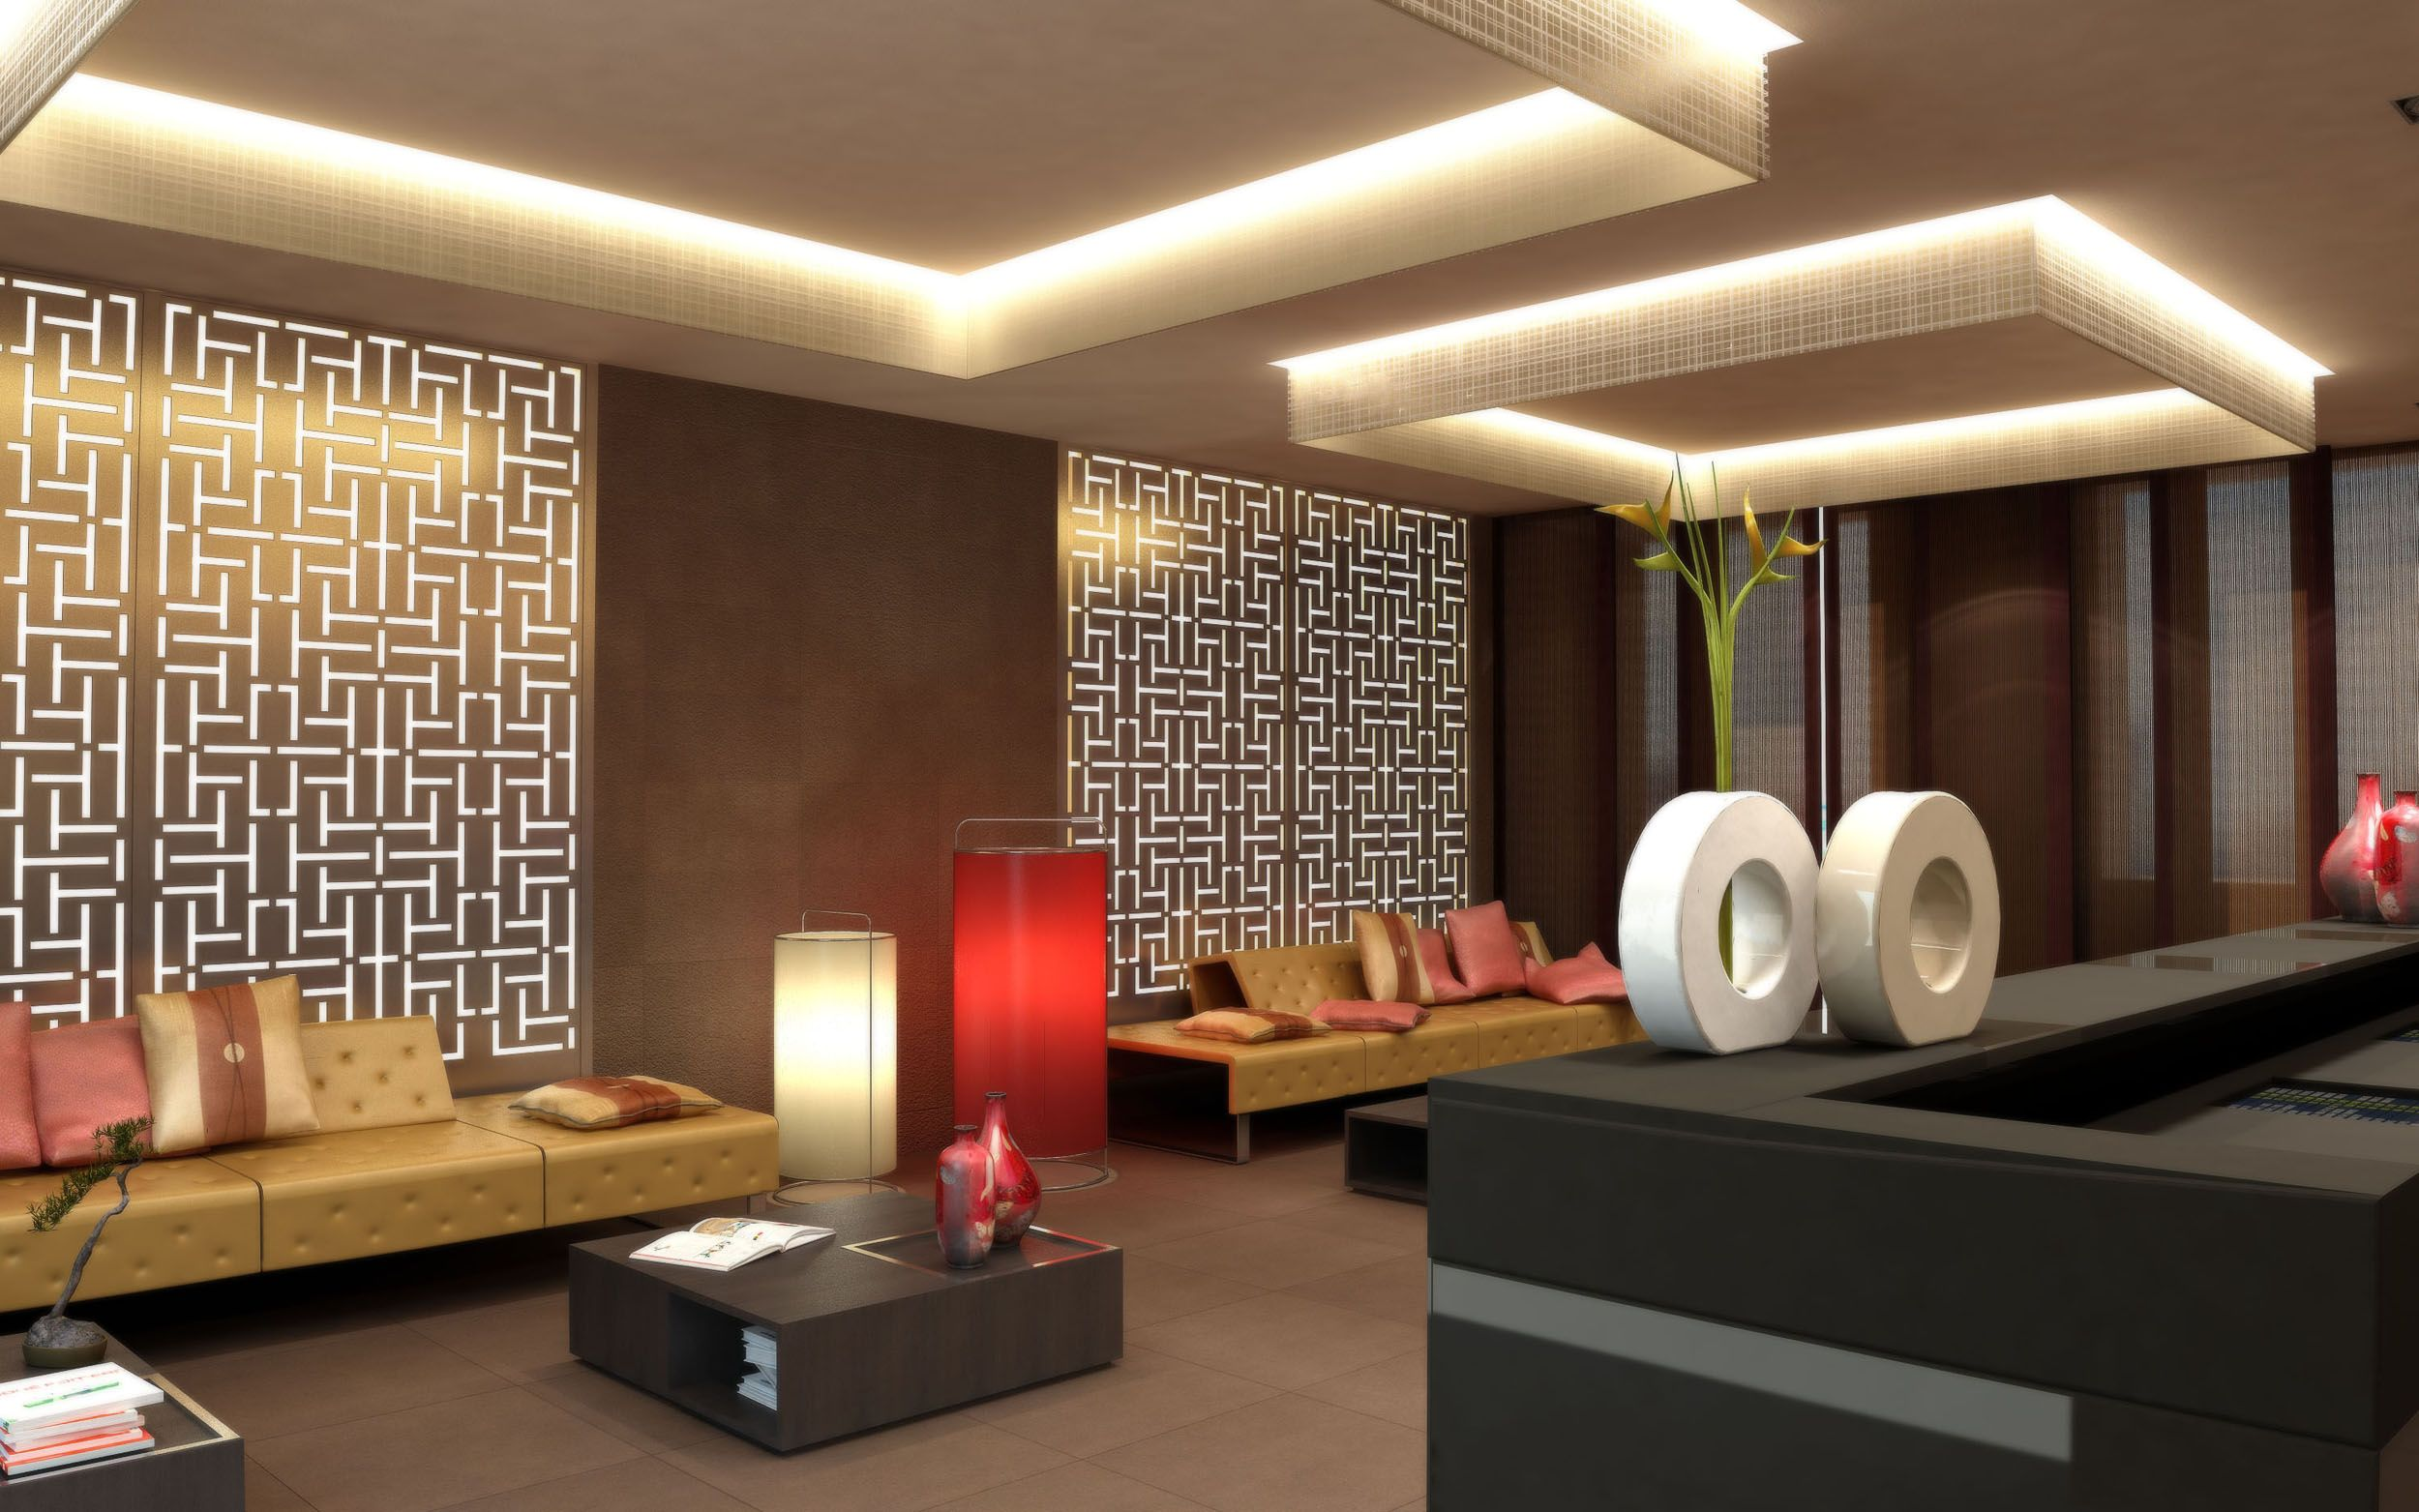 Chinese interior design images chinese interior design for Zen office design ideas